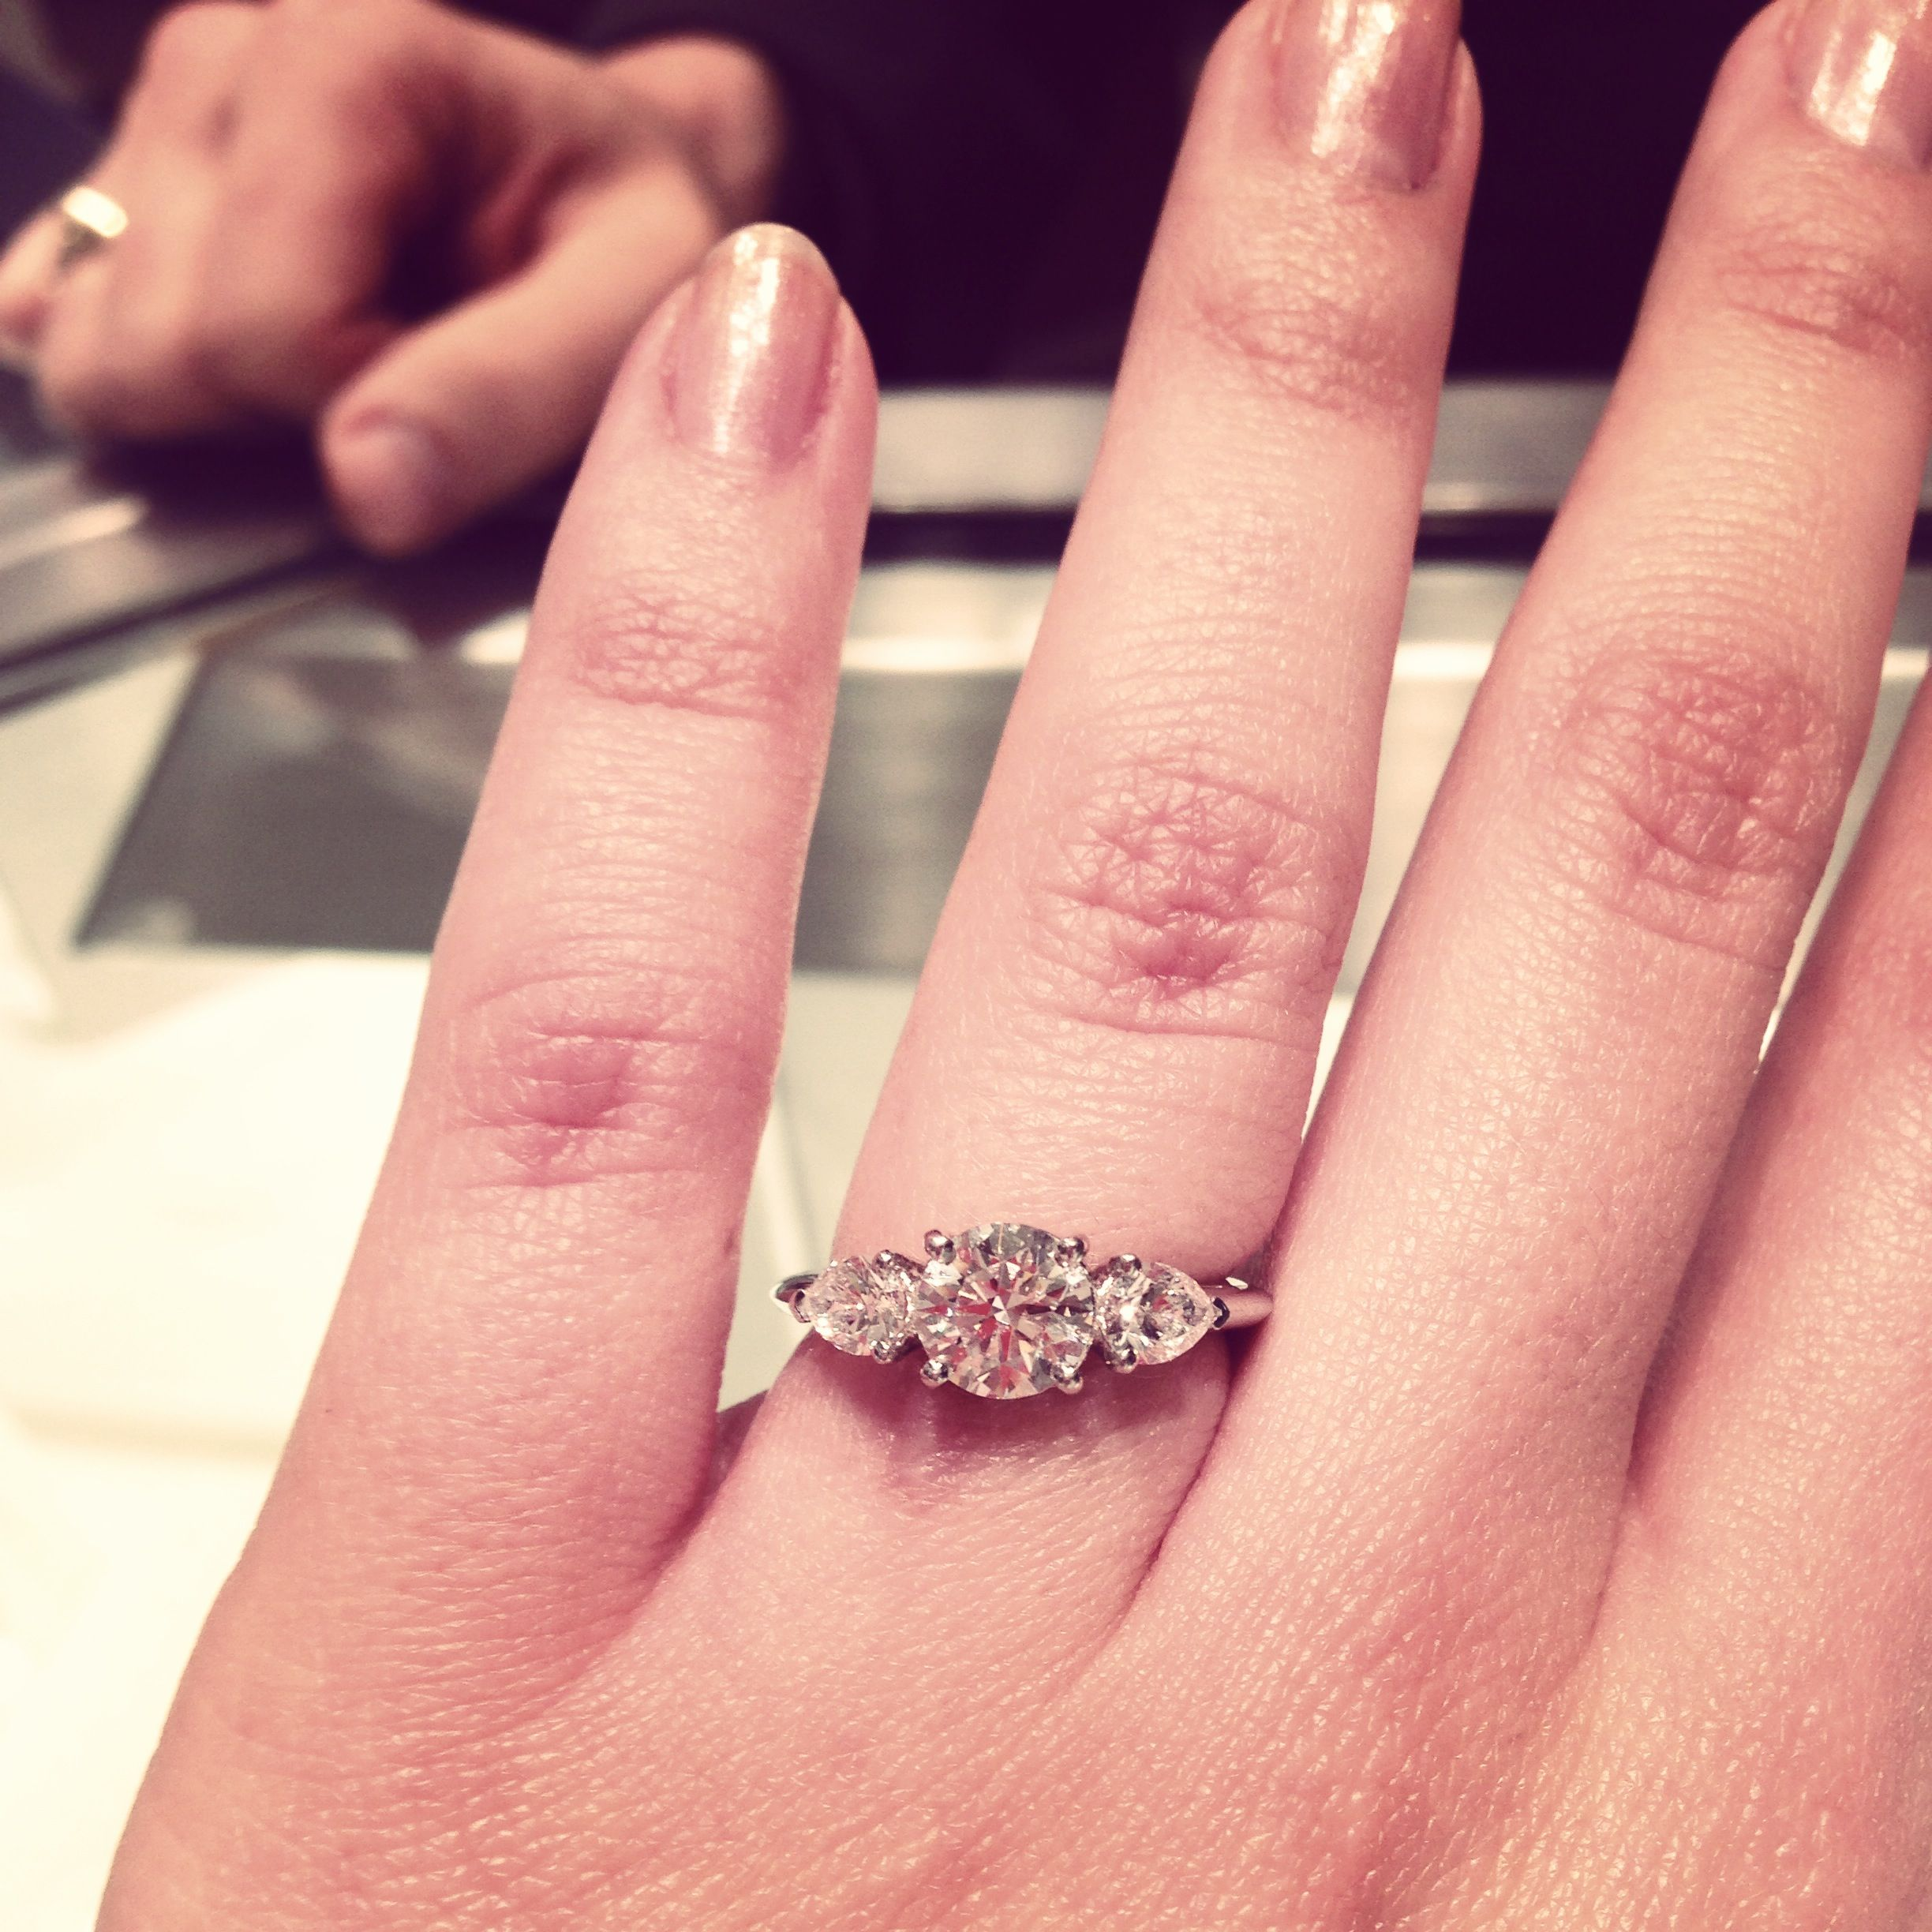 Dream ring from Tiffany's. I'm in love with it.